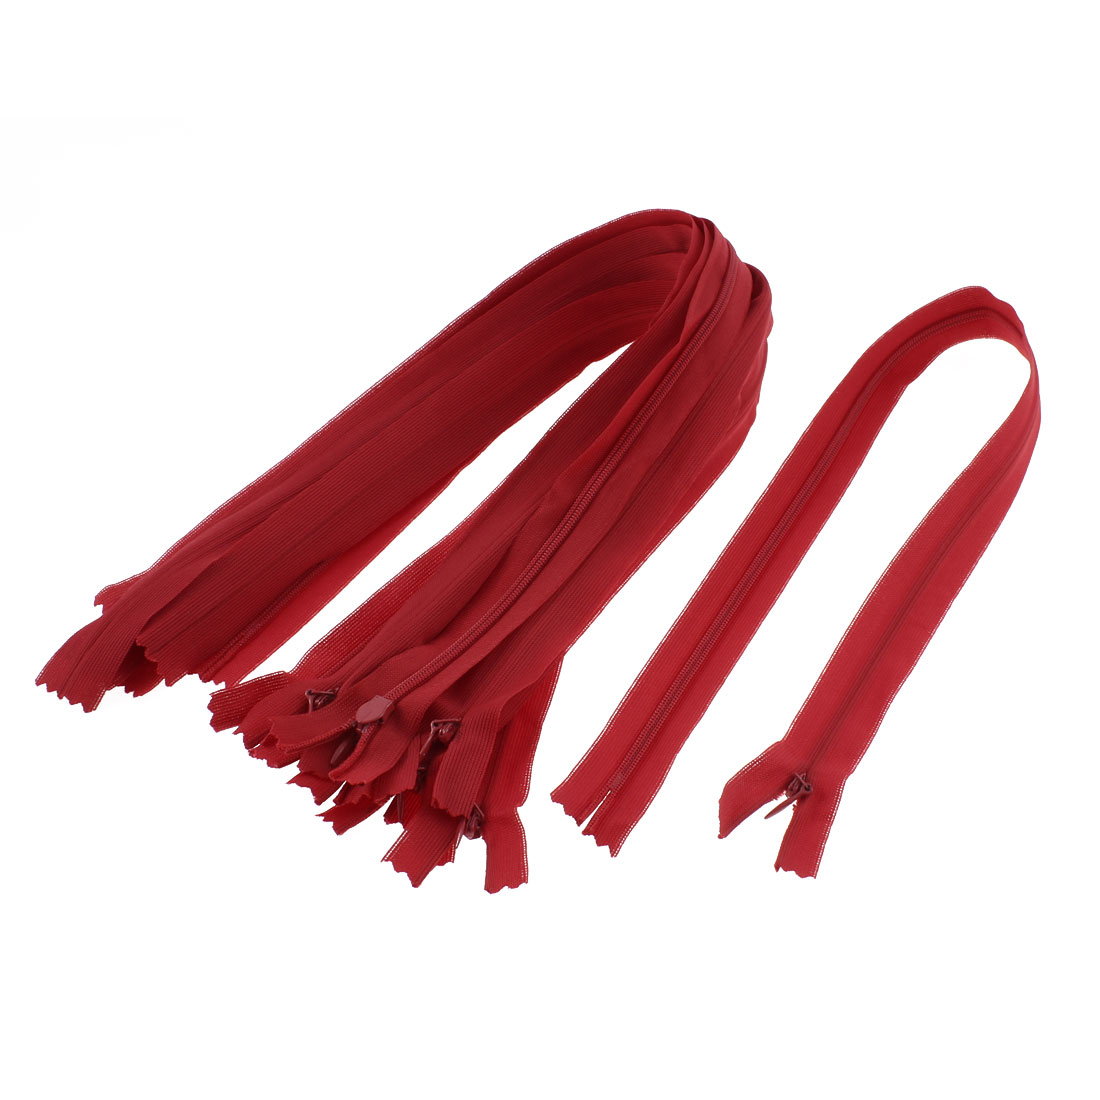 Dress Pants Closed End Nylon Zippers Tailor Sewing Craft Tool Red 50cm 10 Pcs